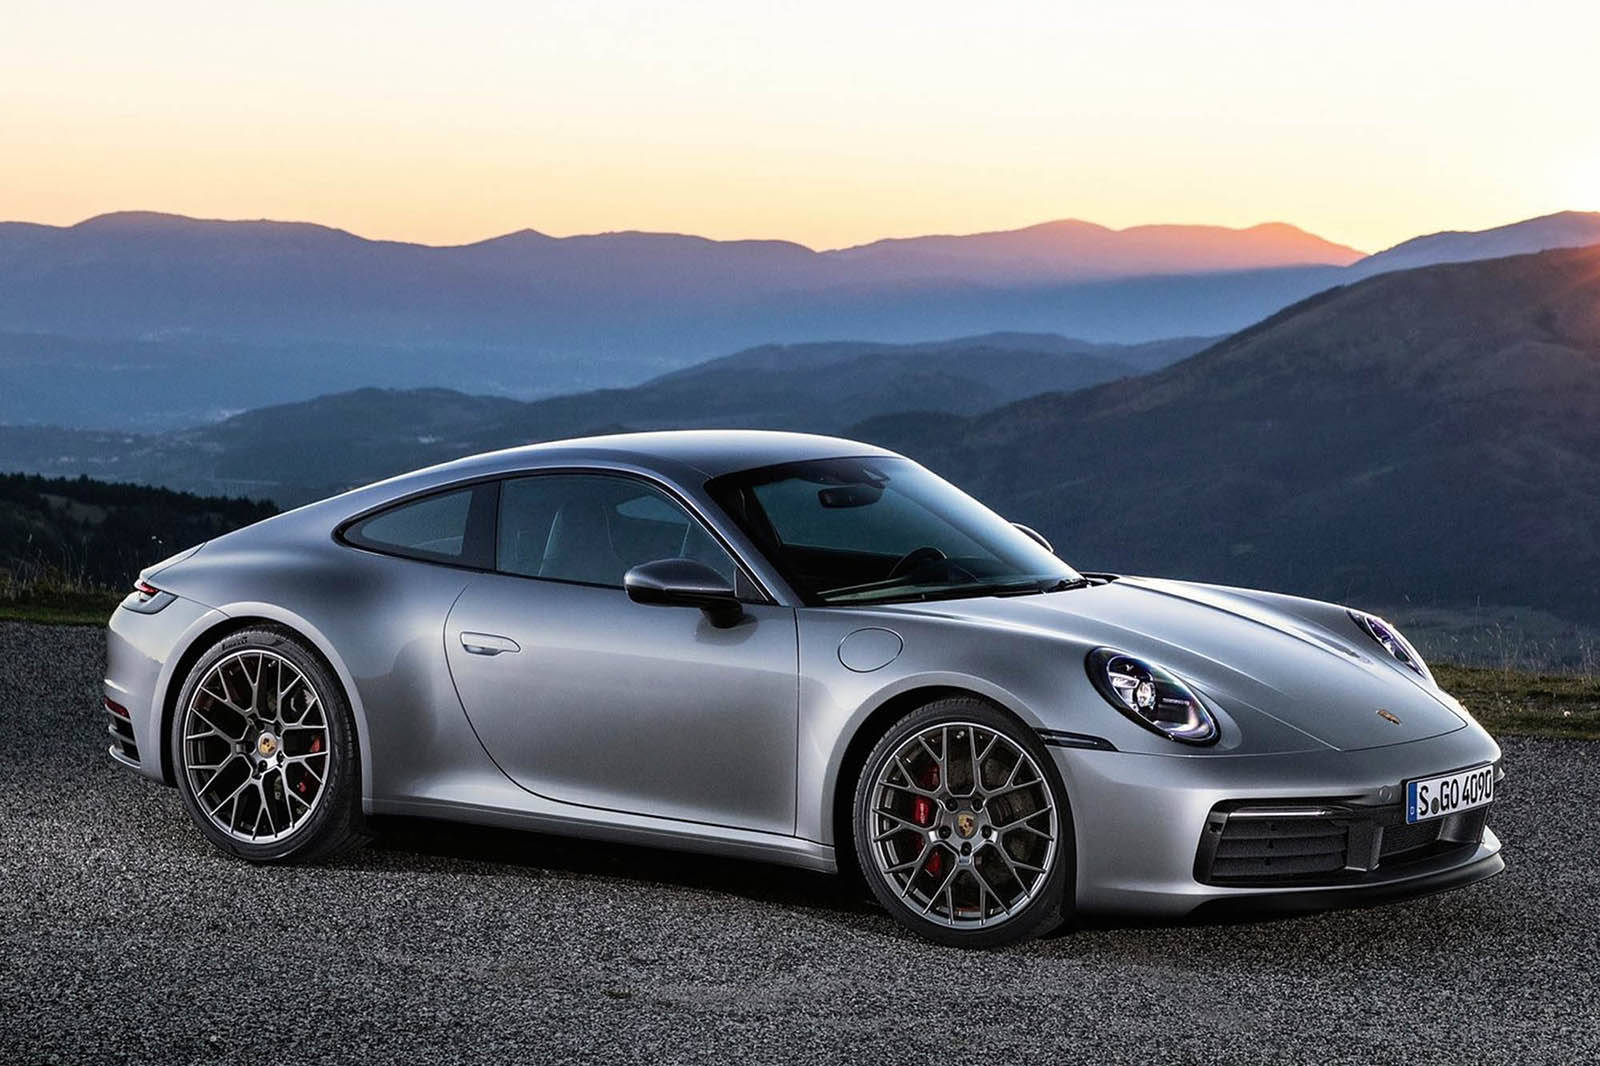 The Porsche 911's confidence-inspiring nature is what makes the car great.